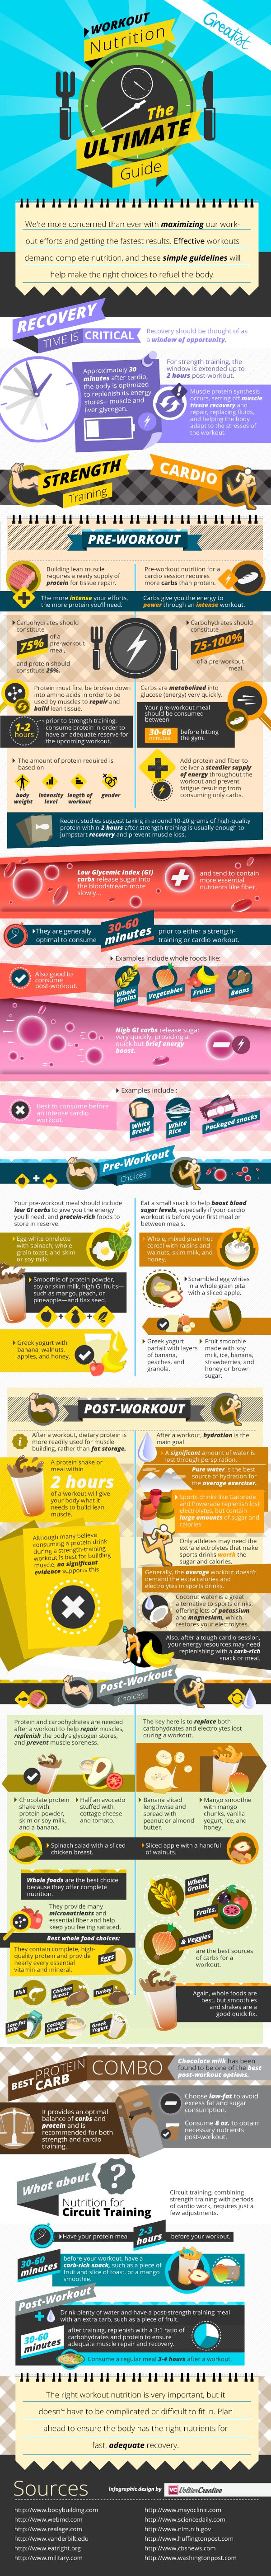 The Complete Guide to Workout Nutrition